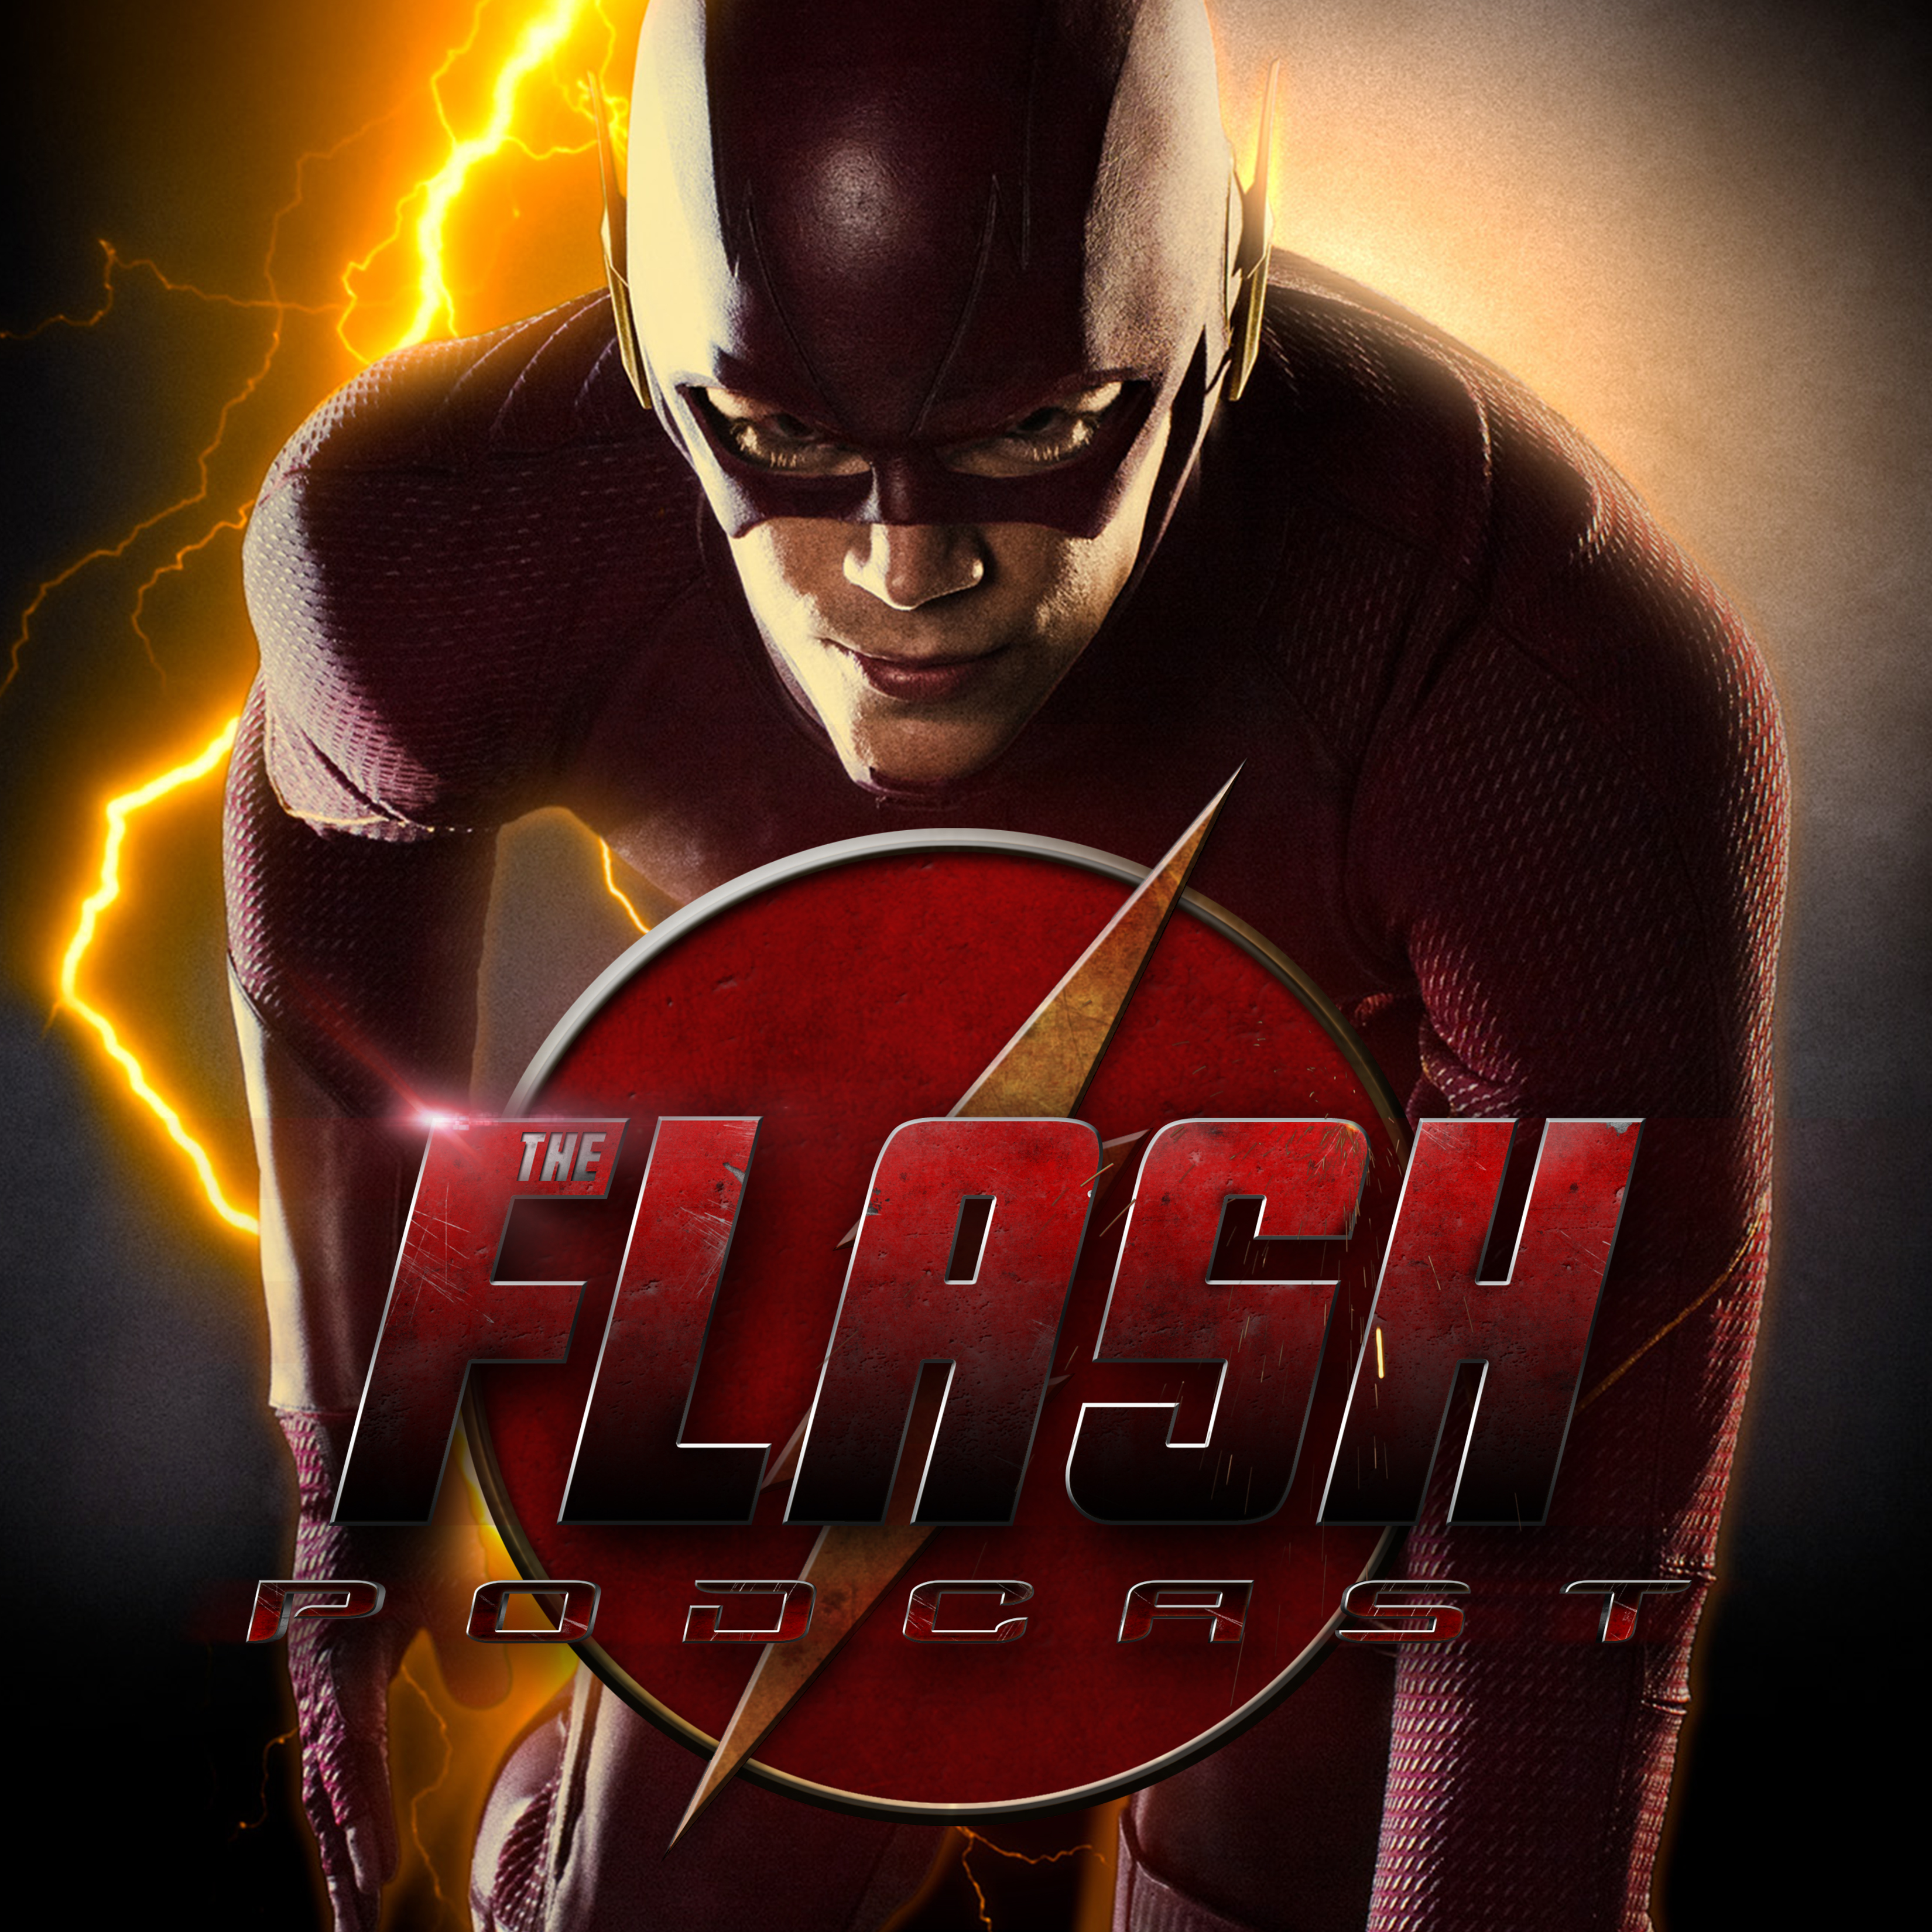 The Flash Podcast 13 - The Nuclear Man